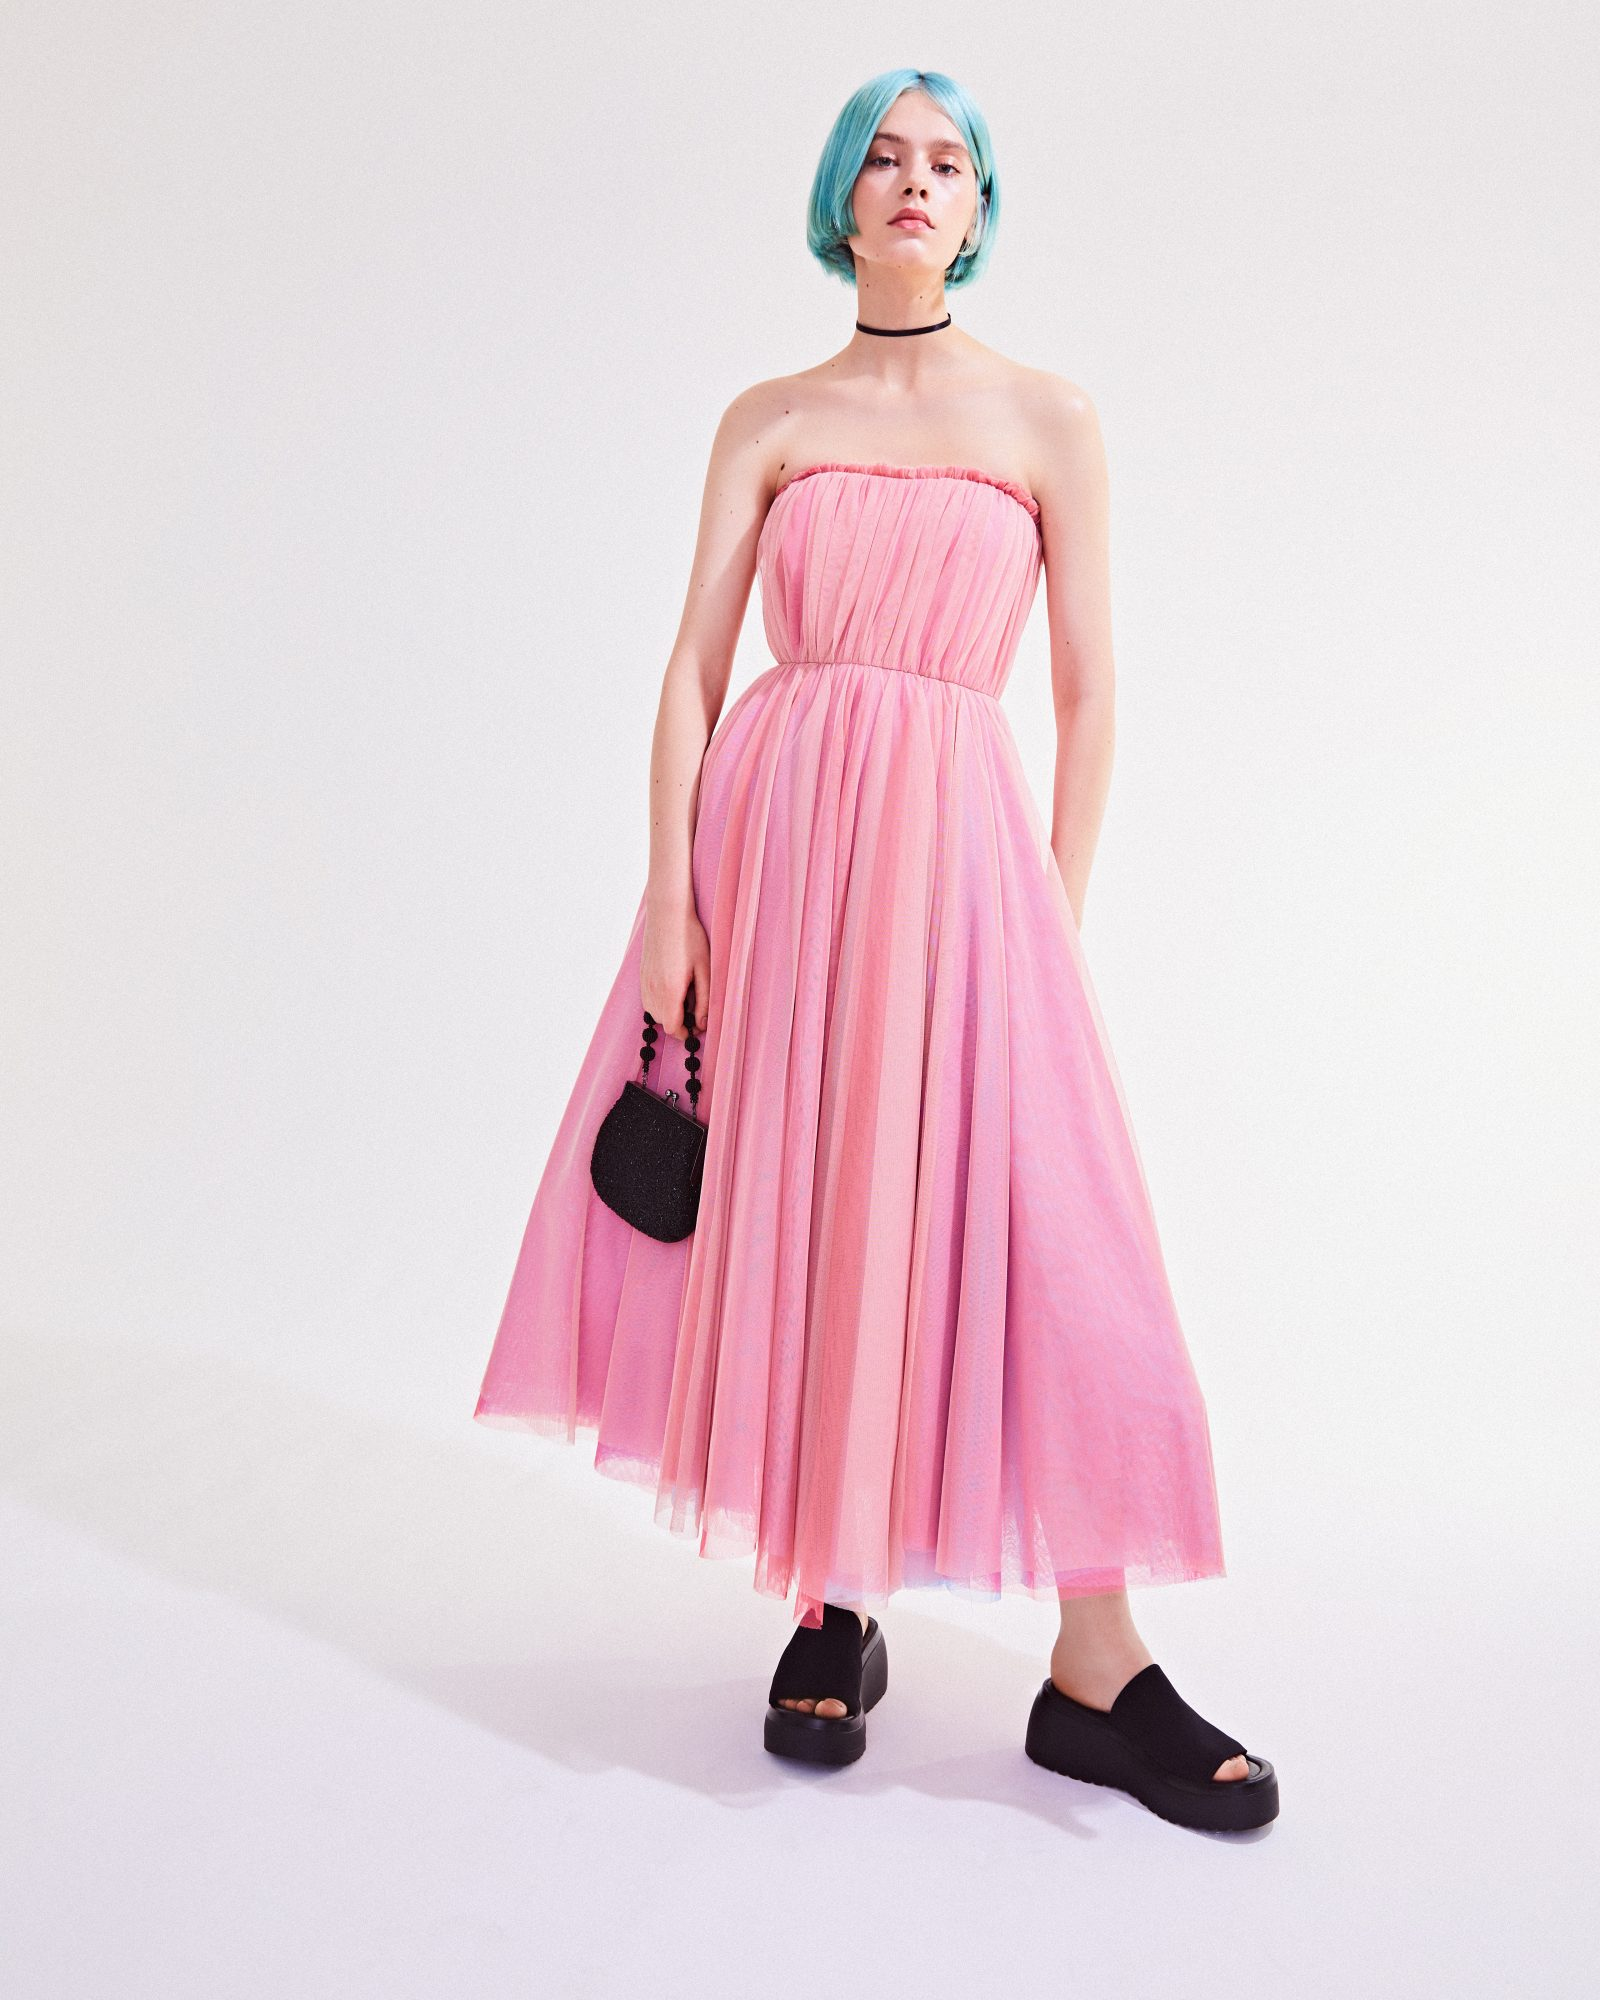 Urban Outfitters x Betsey Johnson